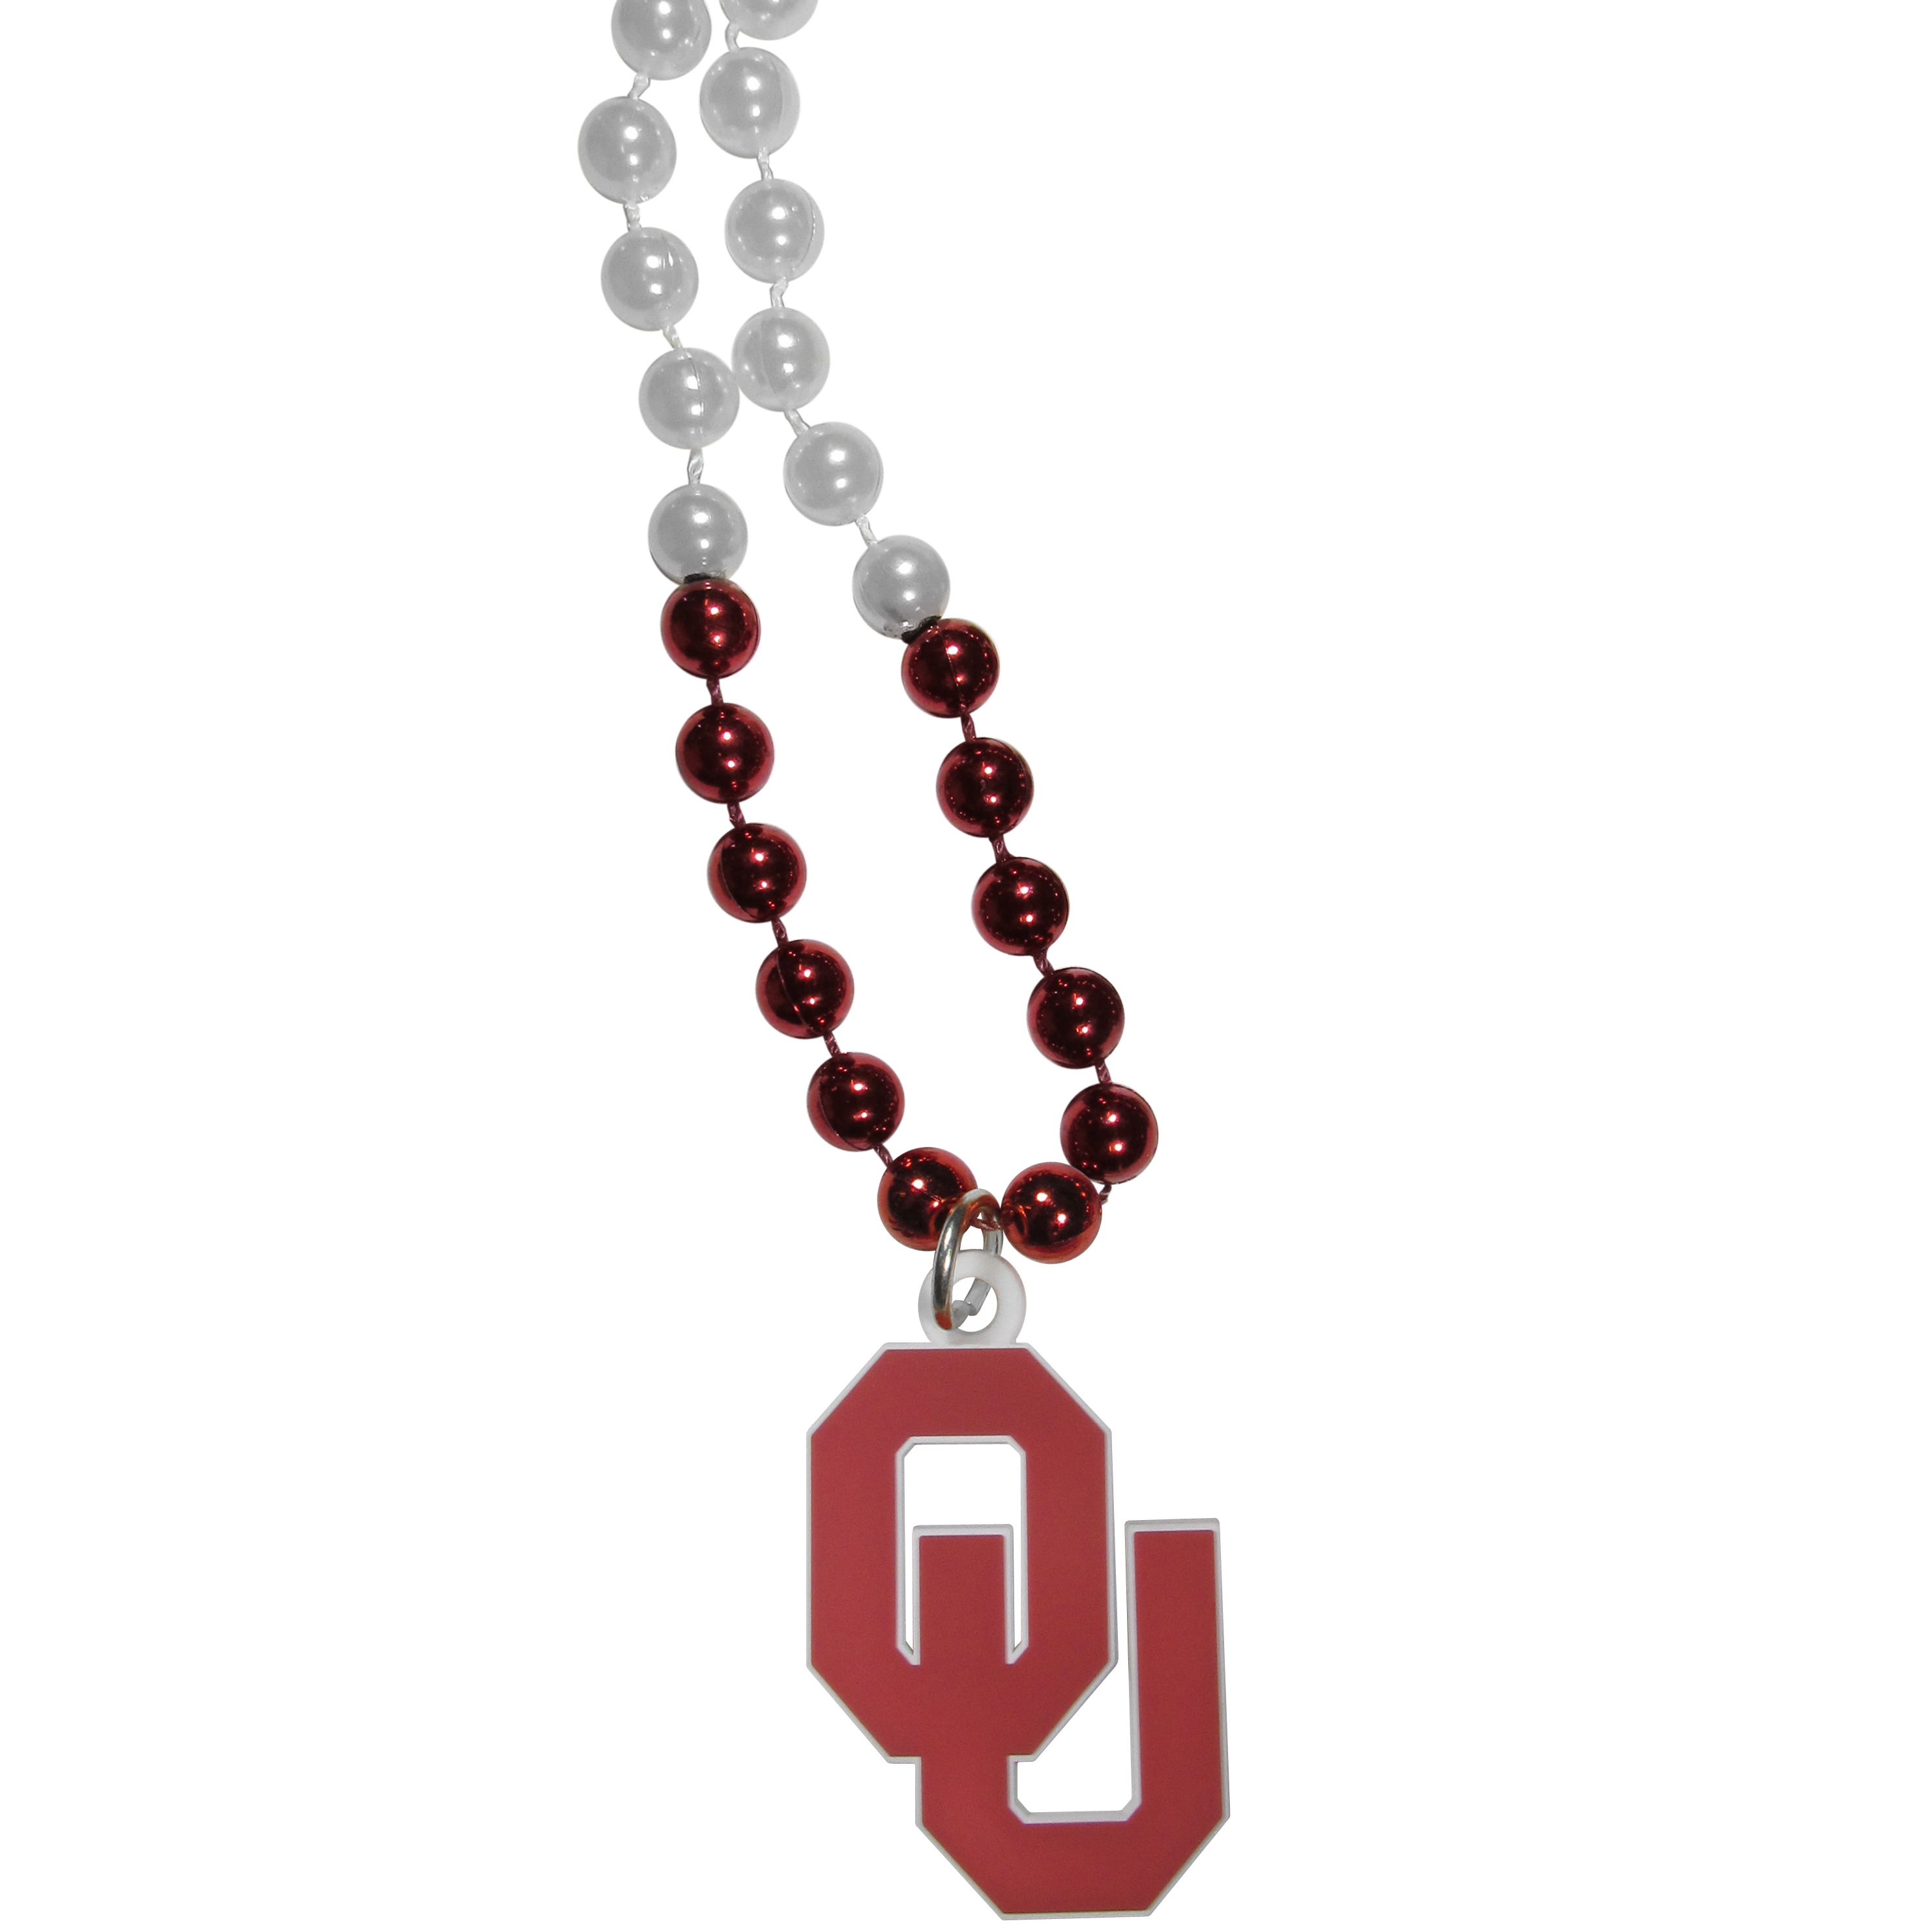 Oklahoma Sooners Mardi Gras Necklace - Get the party started with this Mardi Gras inspired bead necklace. The flashy beads have a shiny finish and come in bright team colors strung together on a 36 inch string so you can make a big statement on game day! The beads come with an extra large flexible team logo that is a full 3 inches at its widest point. This trendy and bold necklace screams out your Oklahoma Sooners pride and is a must have at game time!